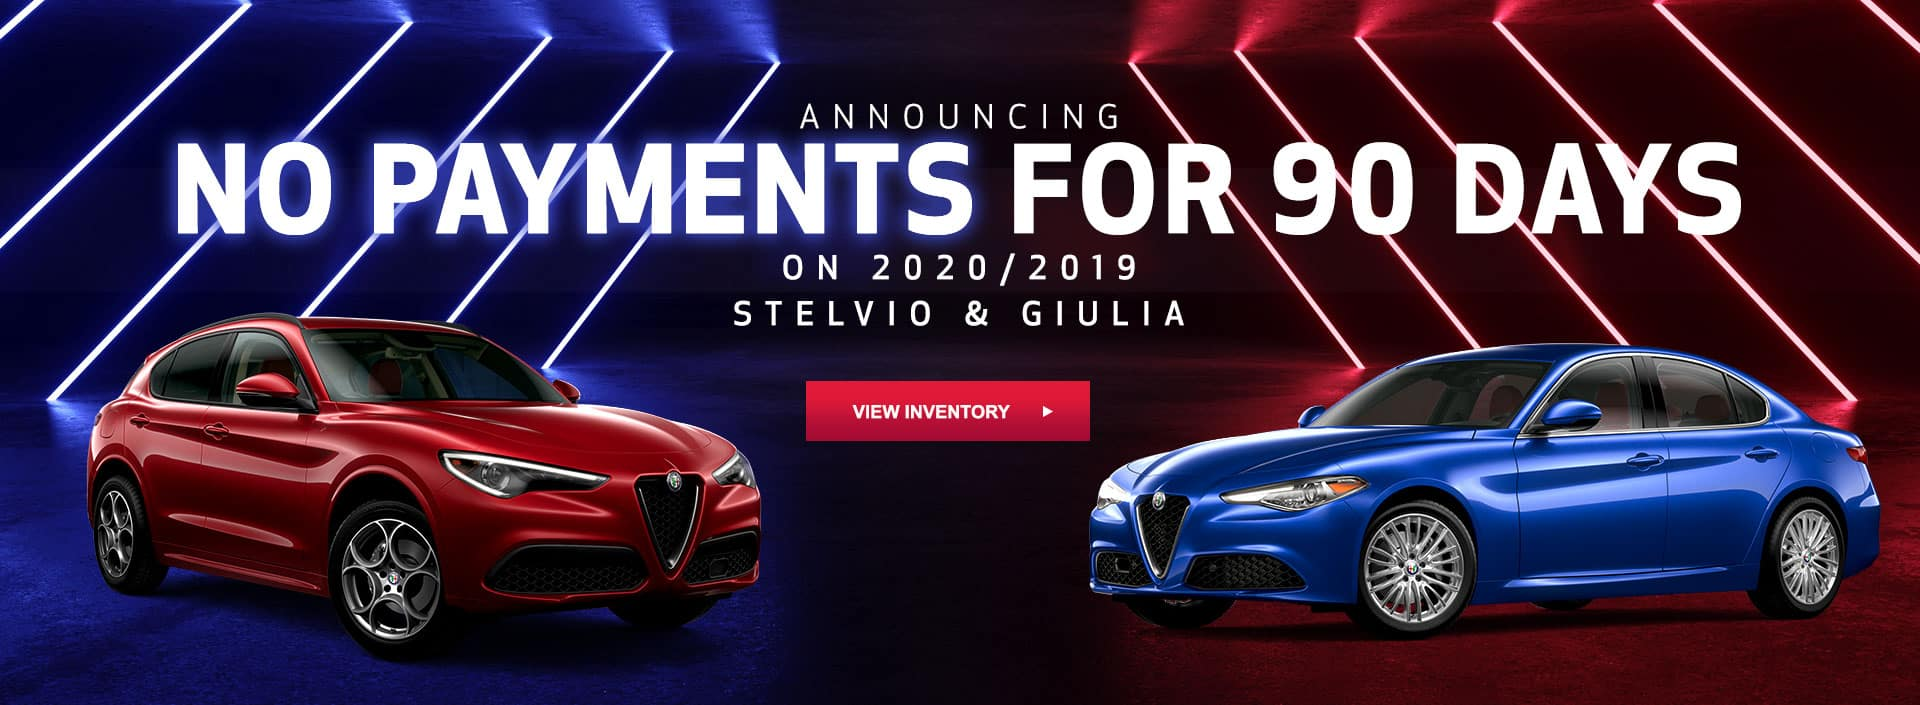 no payments for 90 days on stelvio and giulia